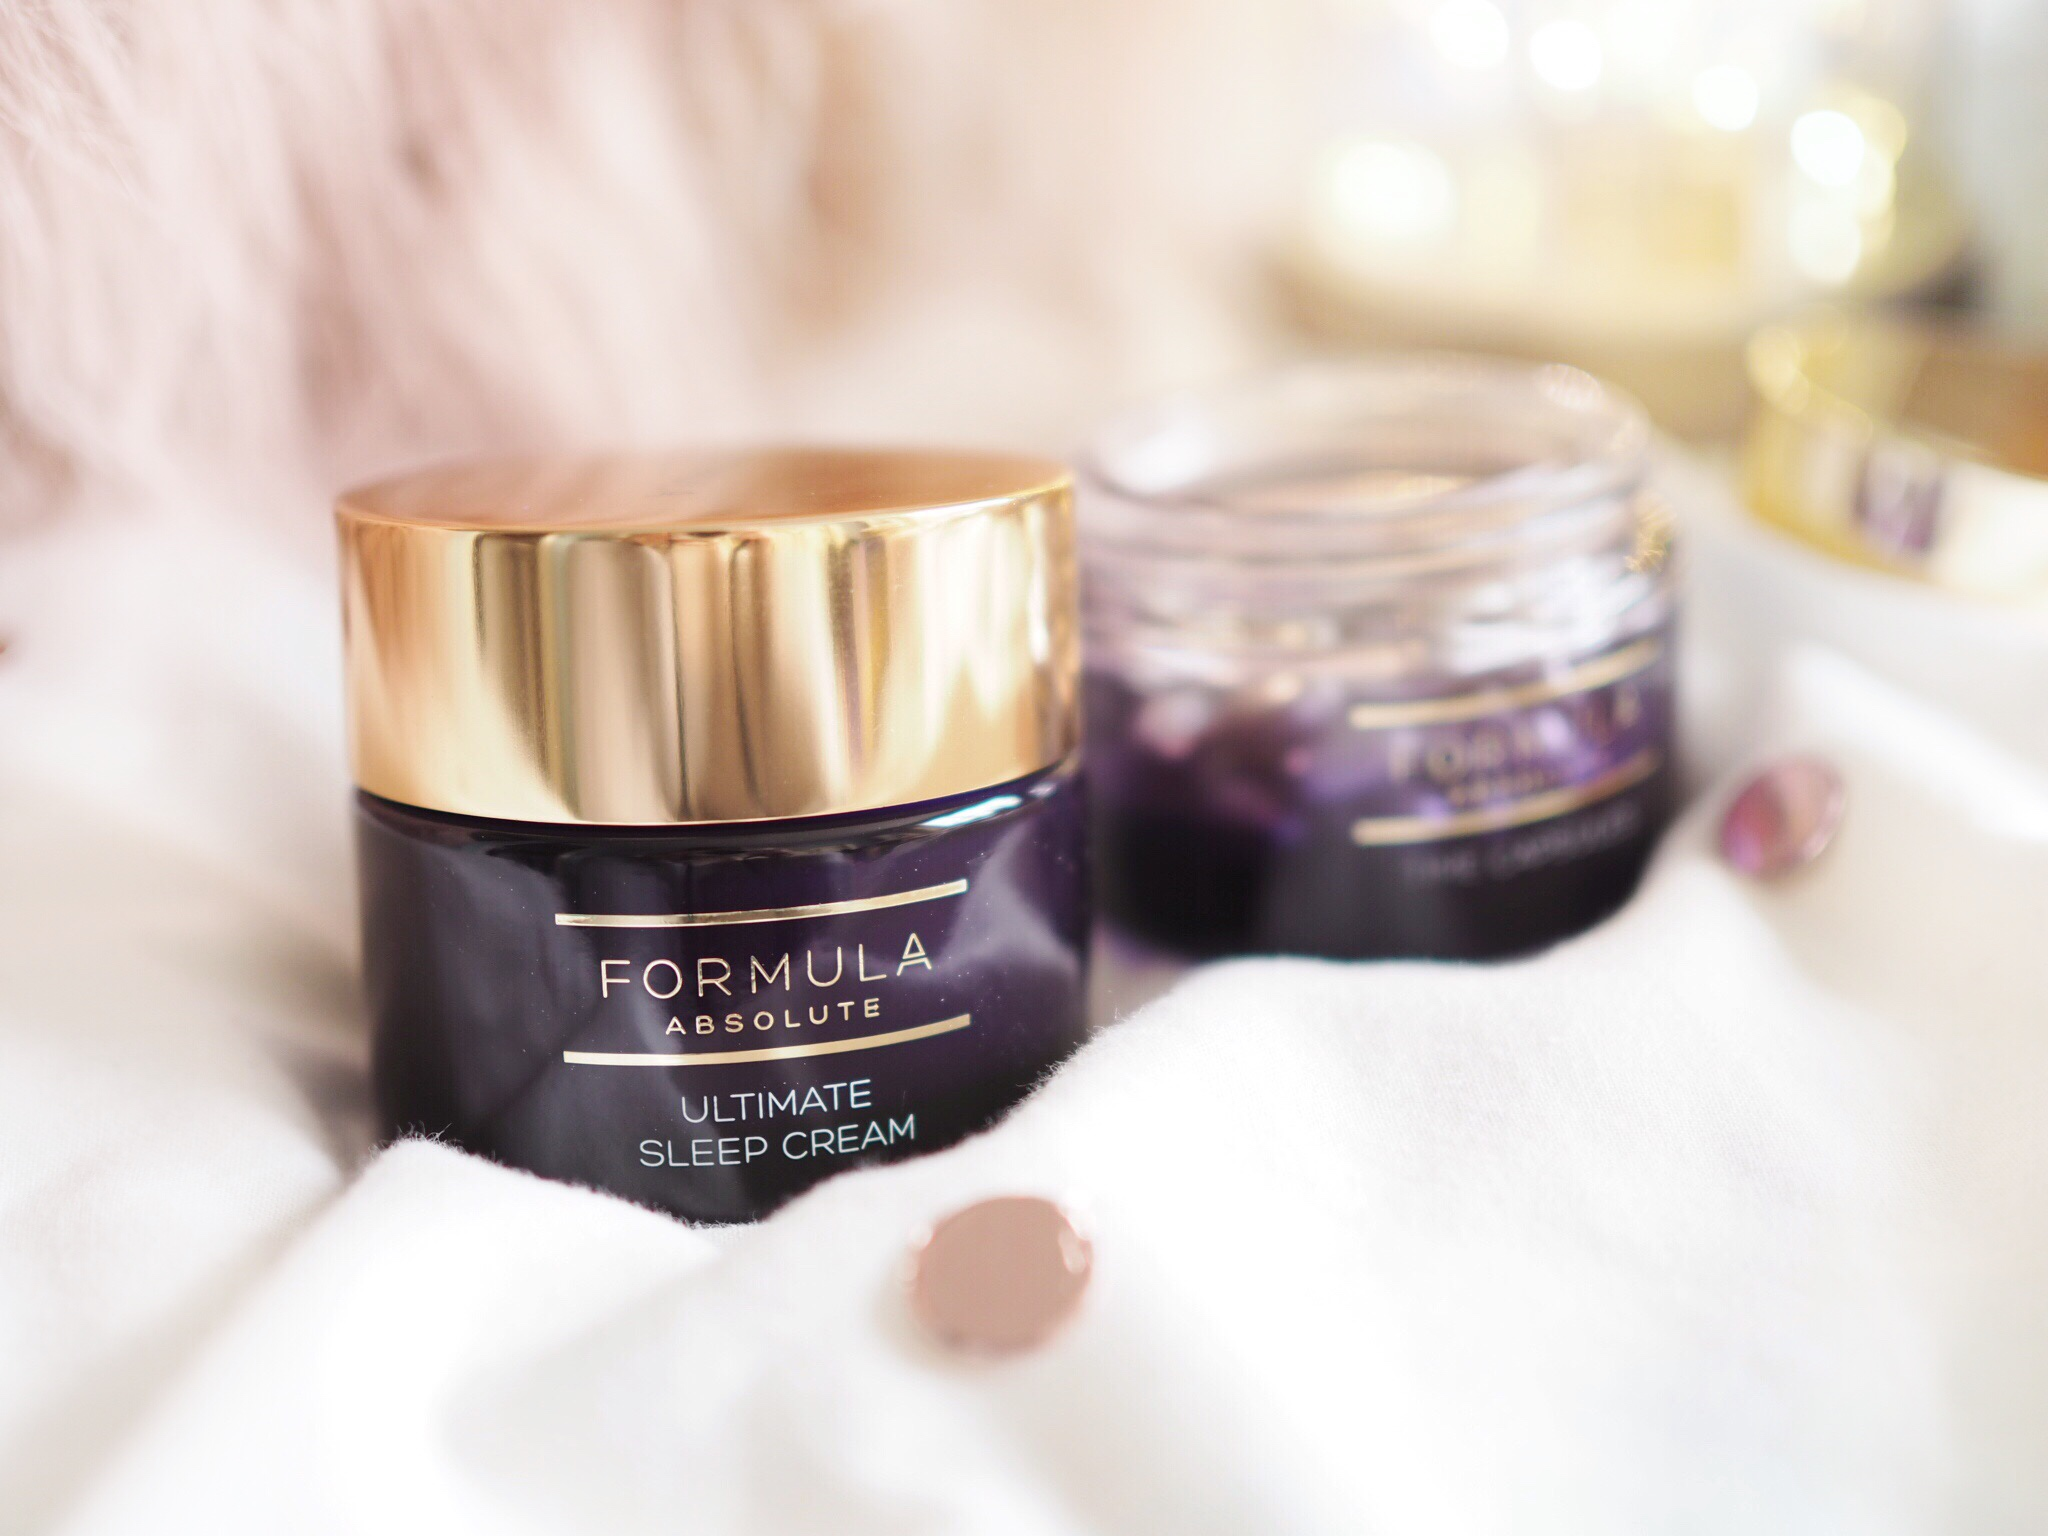 Formula Absolute Ultimate Sleep Cream Review